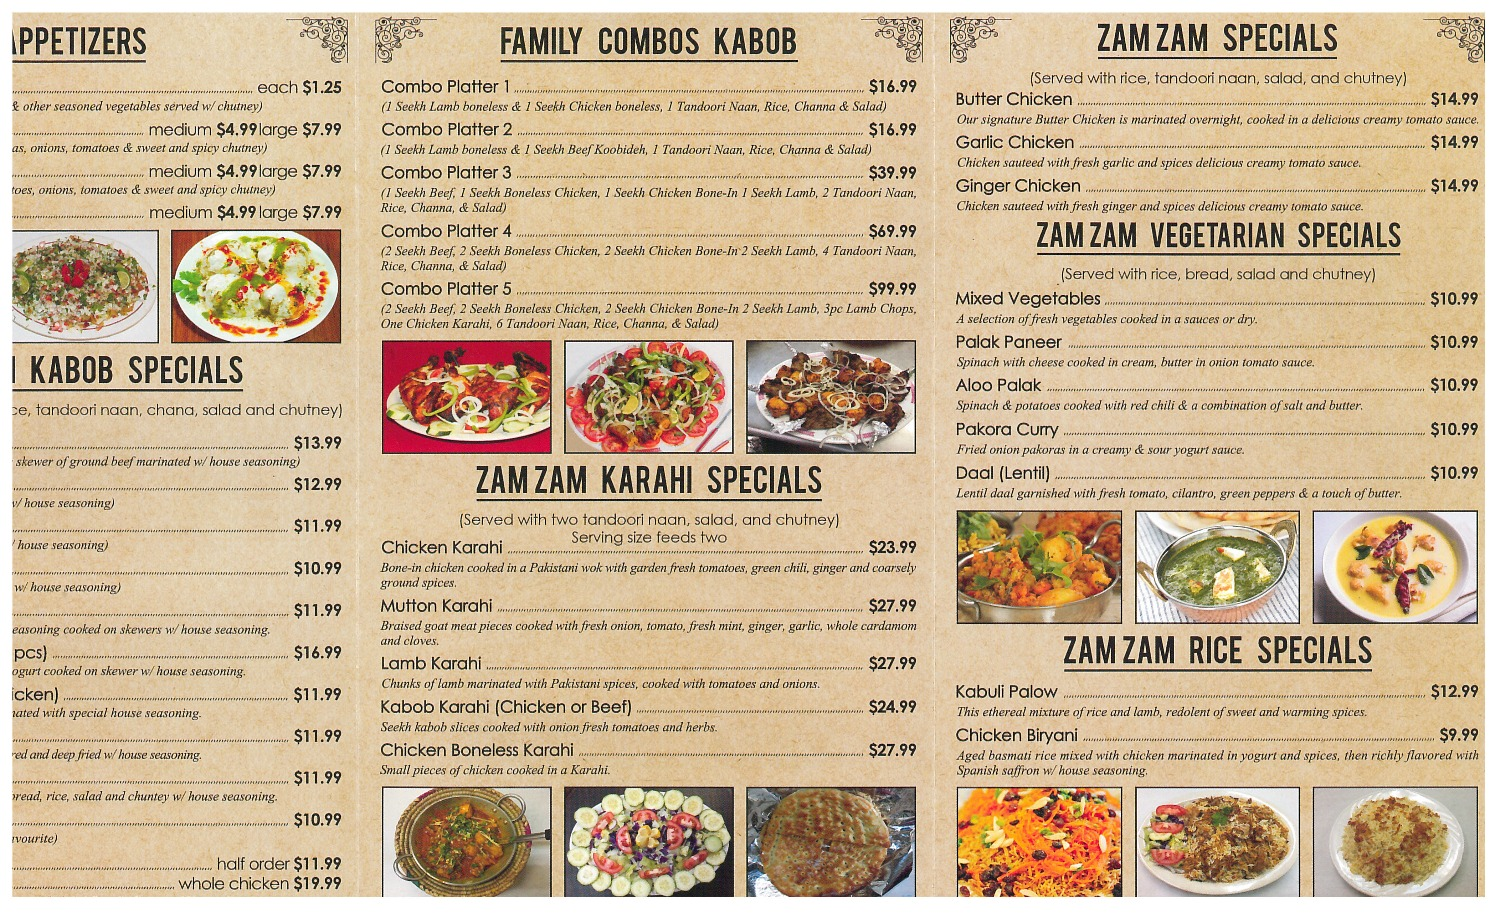 zam zam menu 2 (1)_edited.jpg